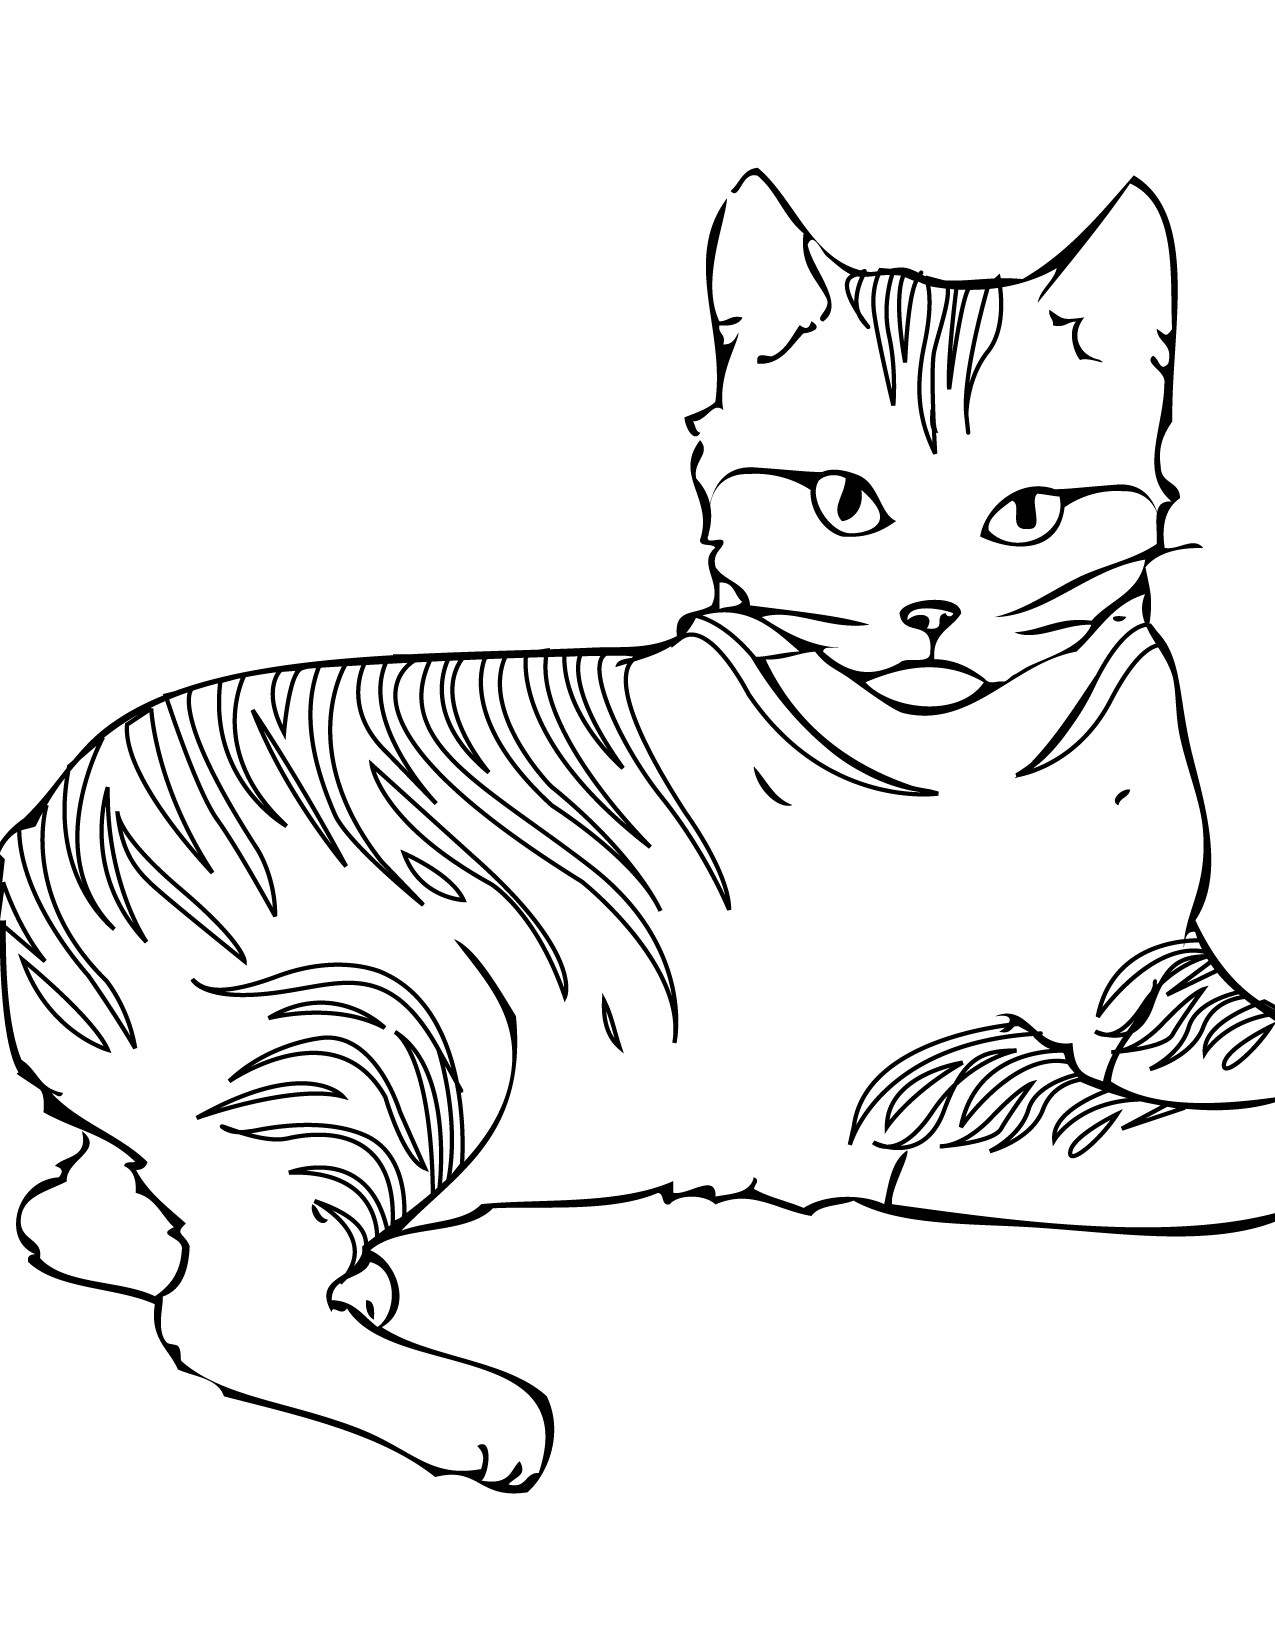 1275x1650 Free Printable Cat Coloring Pages For Kids Amazing Cats Acpra